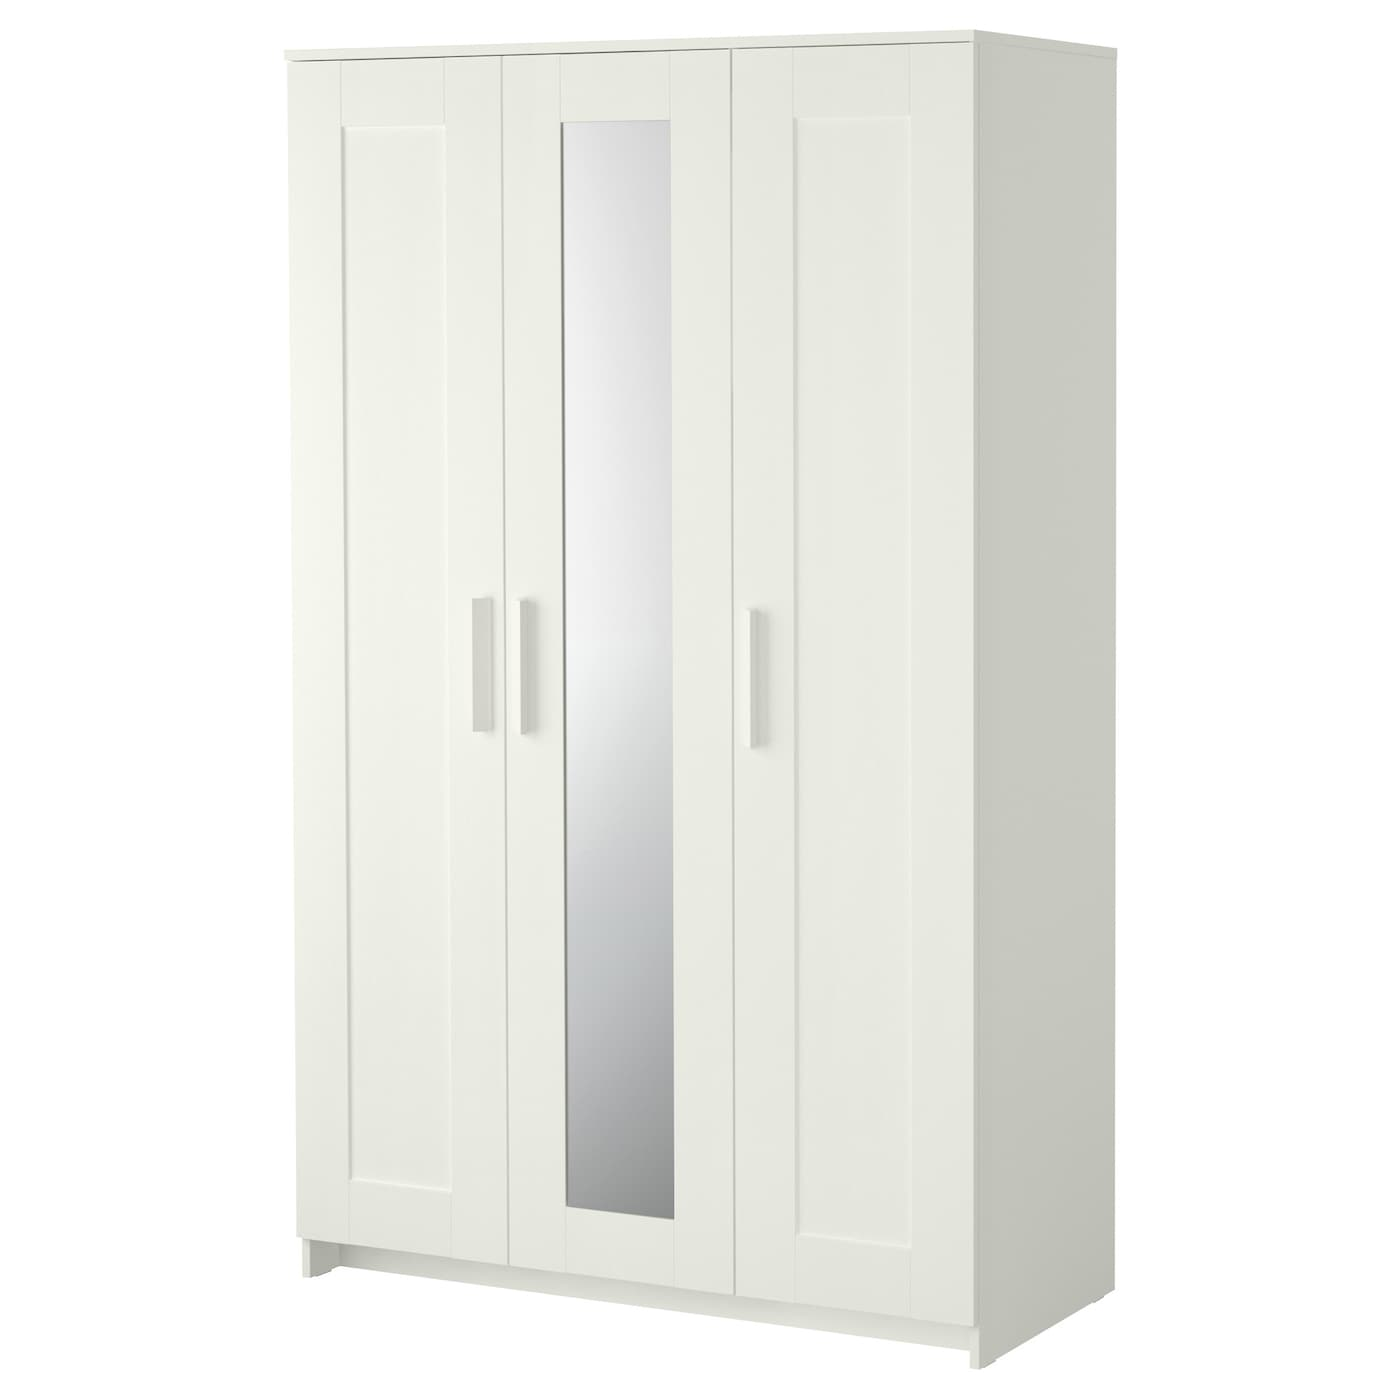 ikea brimnes wardrobe with 3 doors adjustable hinges ensure that the